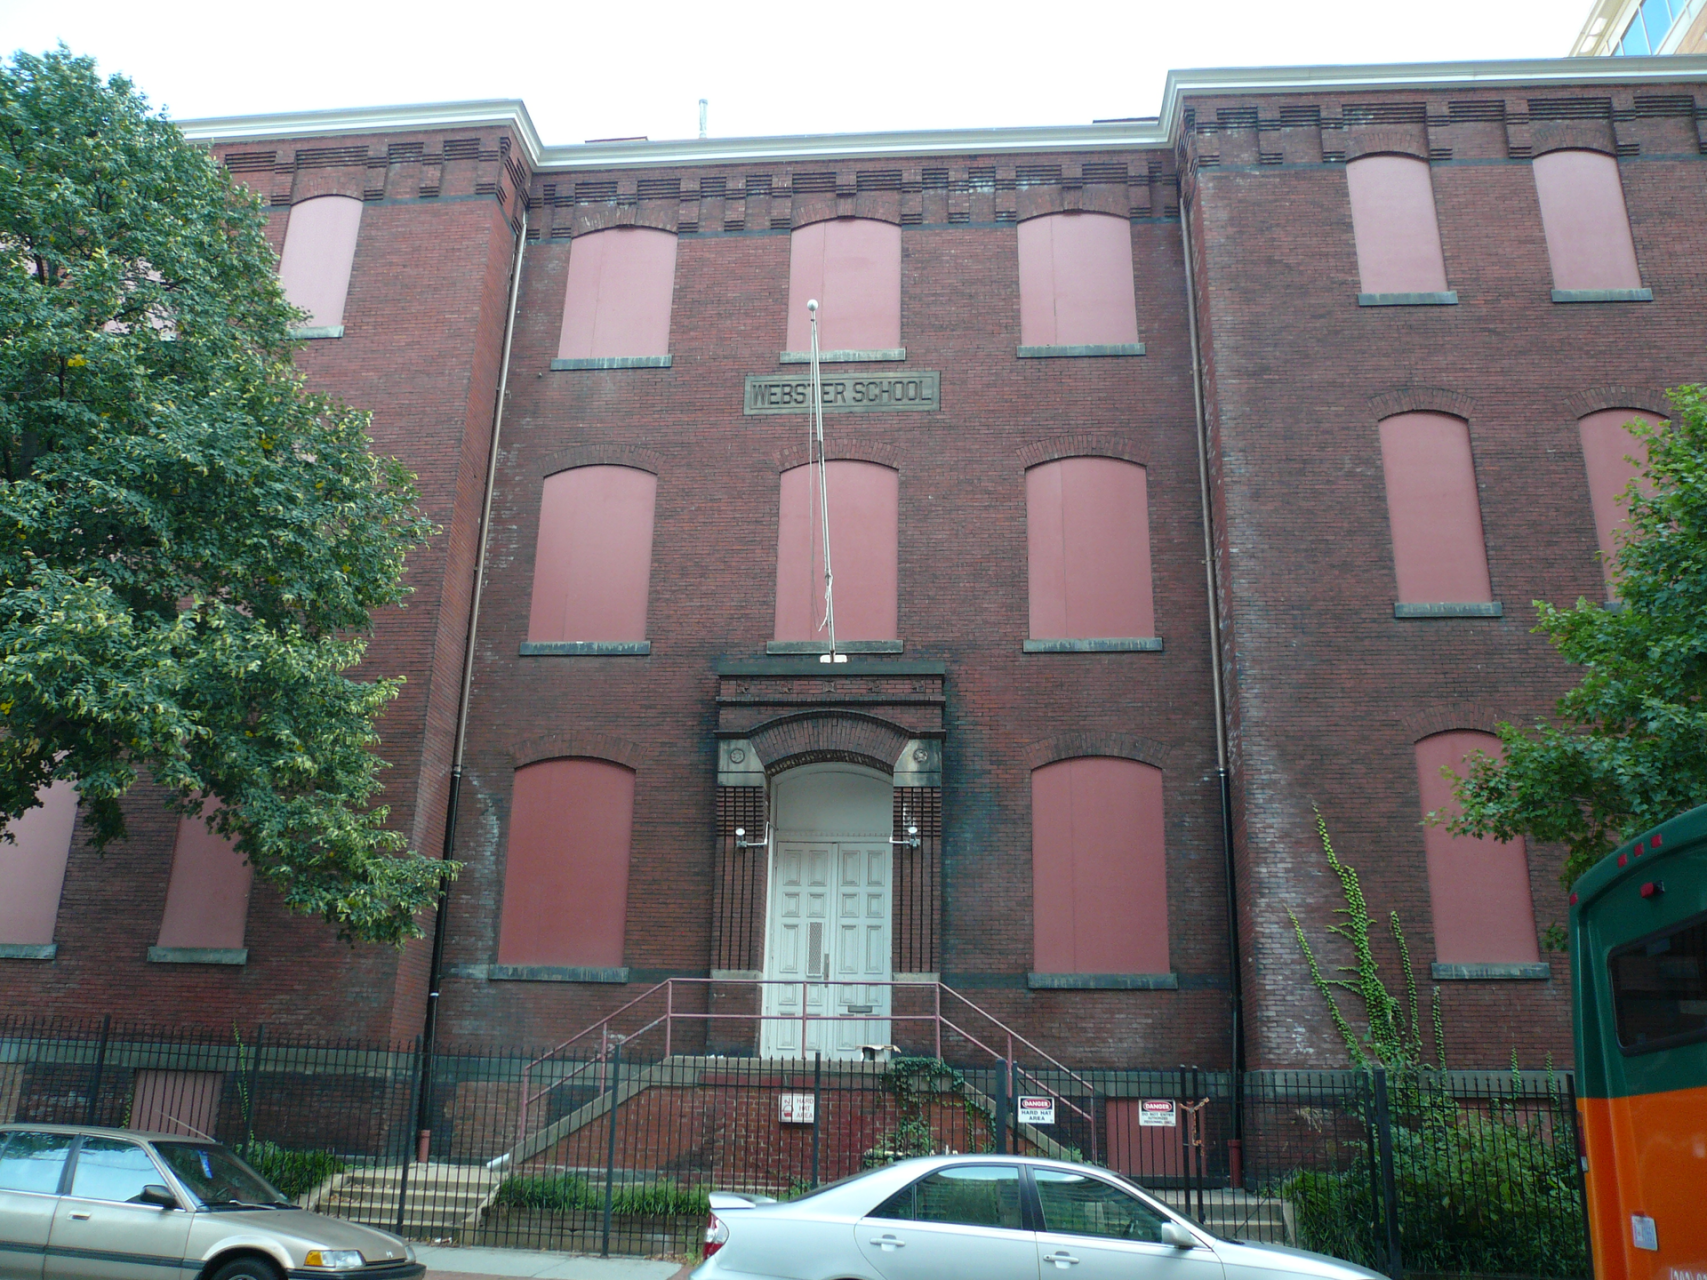 The Webster School, at 940 H Street NW, was built in 1882 as a 12-room schoolhouse. From 1925 until 1949, it was used as an Americanization school, where recent immigrants took citizenship classes, before being used for various purposes by the D.C. Public Schools. It was boarded up in the 1990s, and subsequent designation as an historic landmark halted plans to redevelop the building. Its been vacant ever since, and property records indicate that it's technically owned by the U.S. General Services Administration, which doesn't have to pay vacant property taxes. s been vacant ever since, and property records indicate that its technically owned by the U.S. General Services Administration, which doesn't have to pay vacant property taxes. s technically owned by the U.S. General Services Administration, which doesnt have to pay vacant property taxes. t have to pay vacant property taxes.